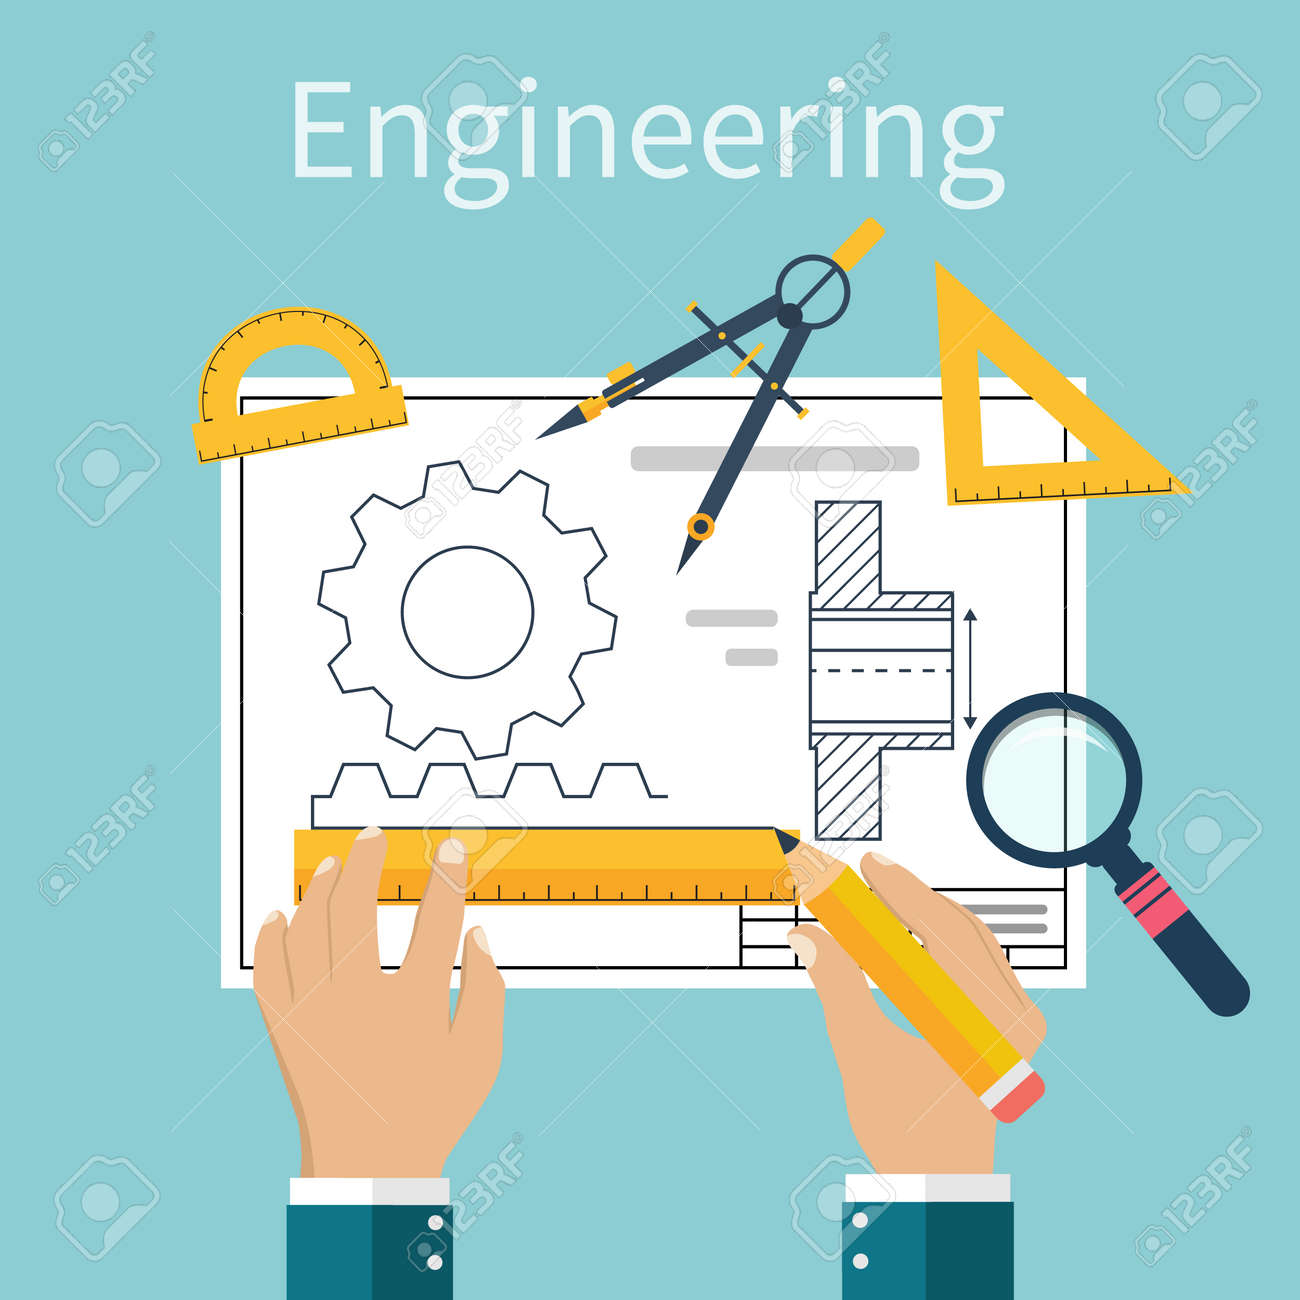 Engineer working on blueprint. Engineering drawing, technical scheme. Sketching gear, project. Engineer Designer in project. Drawings for production, engineering, manufacturing processes. Vector, flat - 54110314